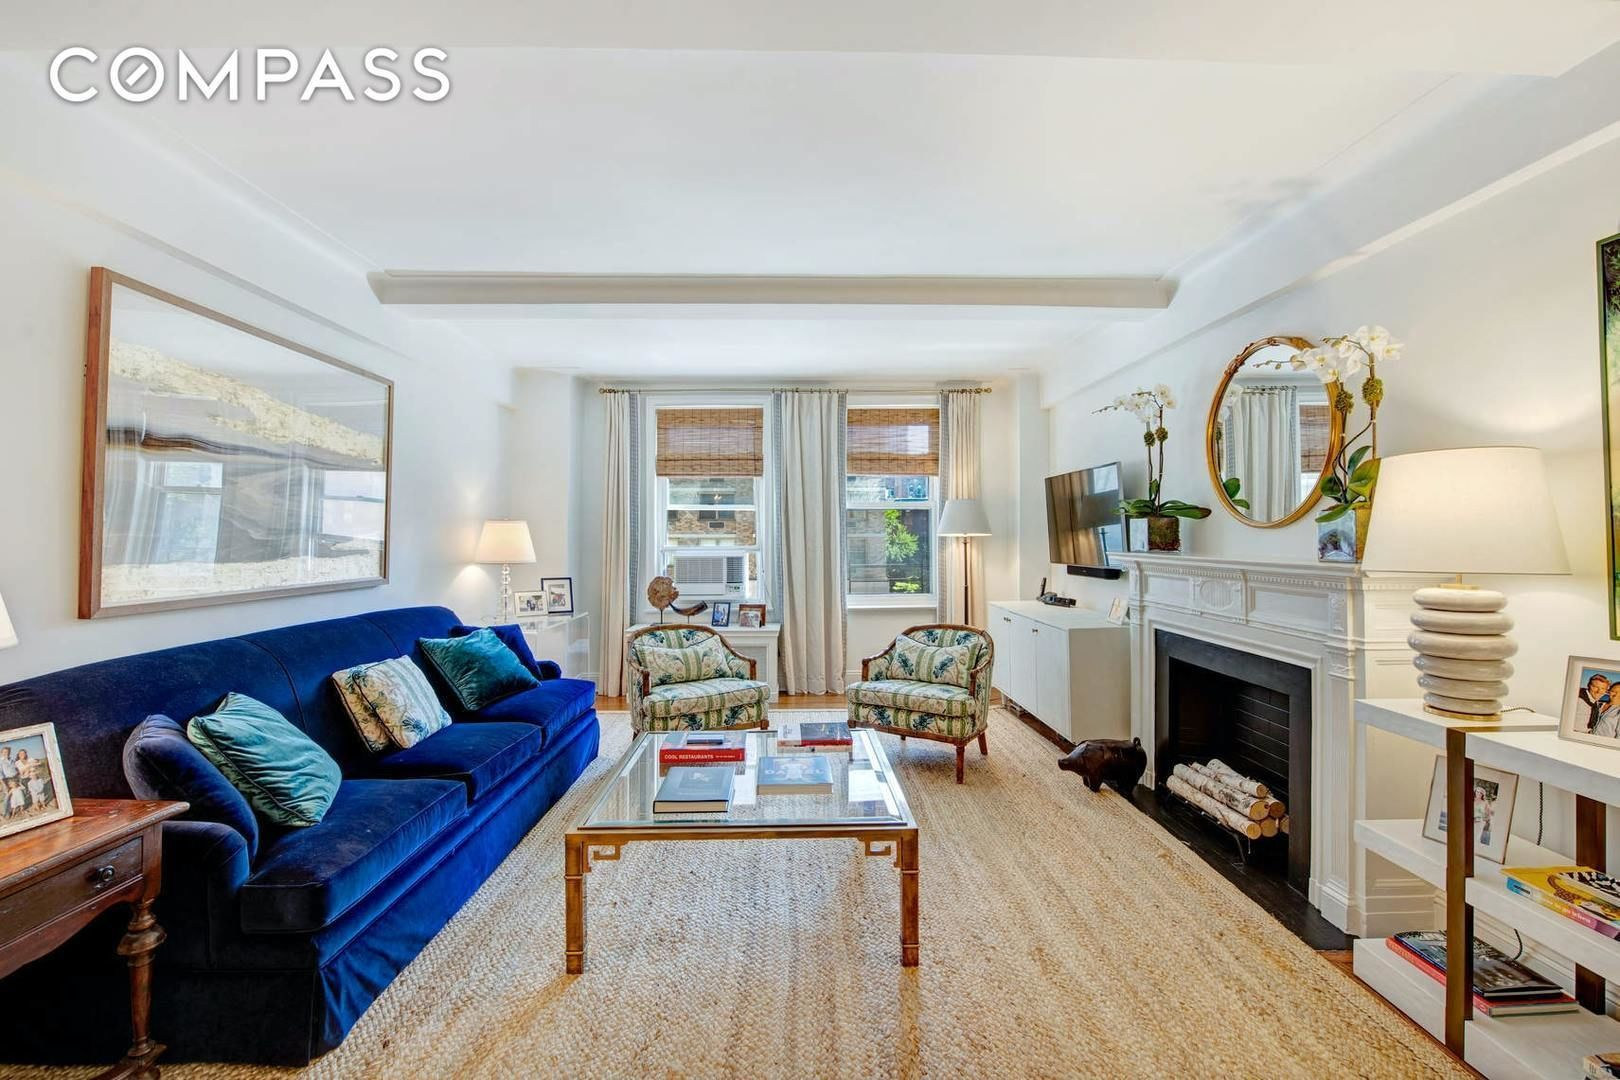 Apartment for sale at 308 East 79th Street, Apt 4-A